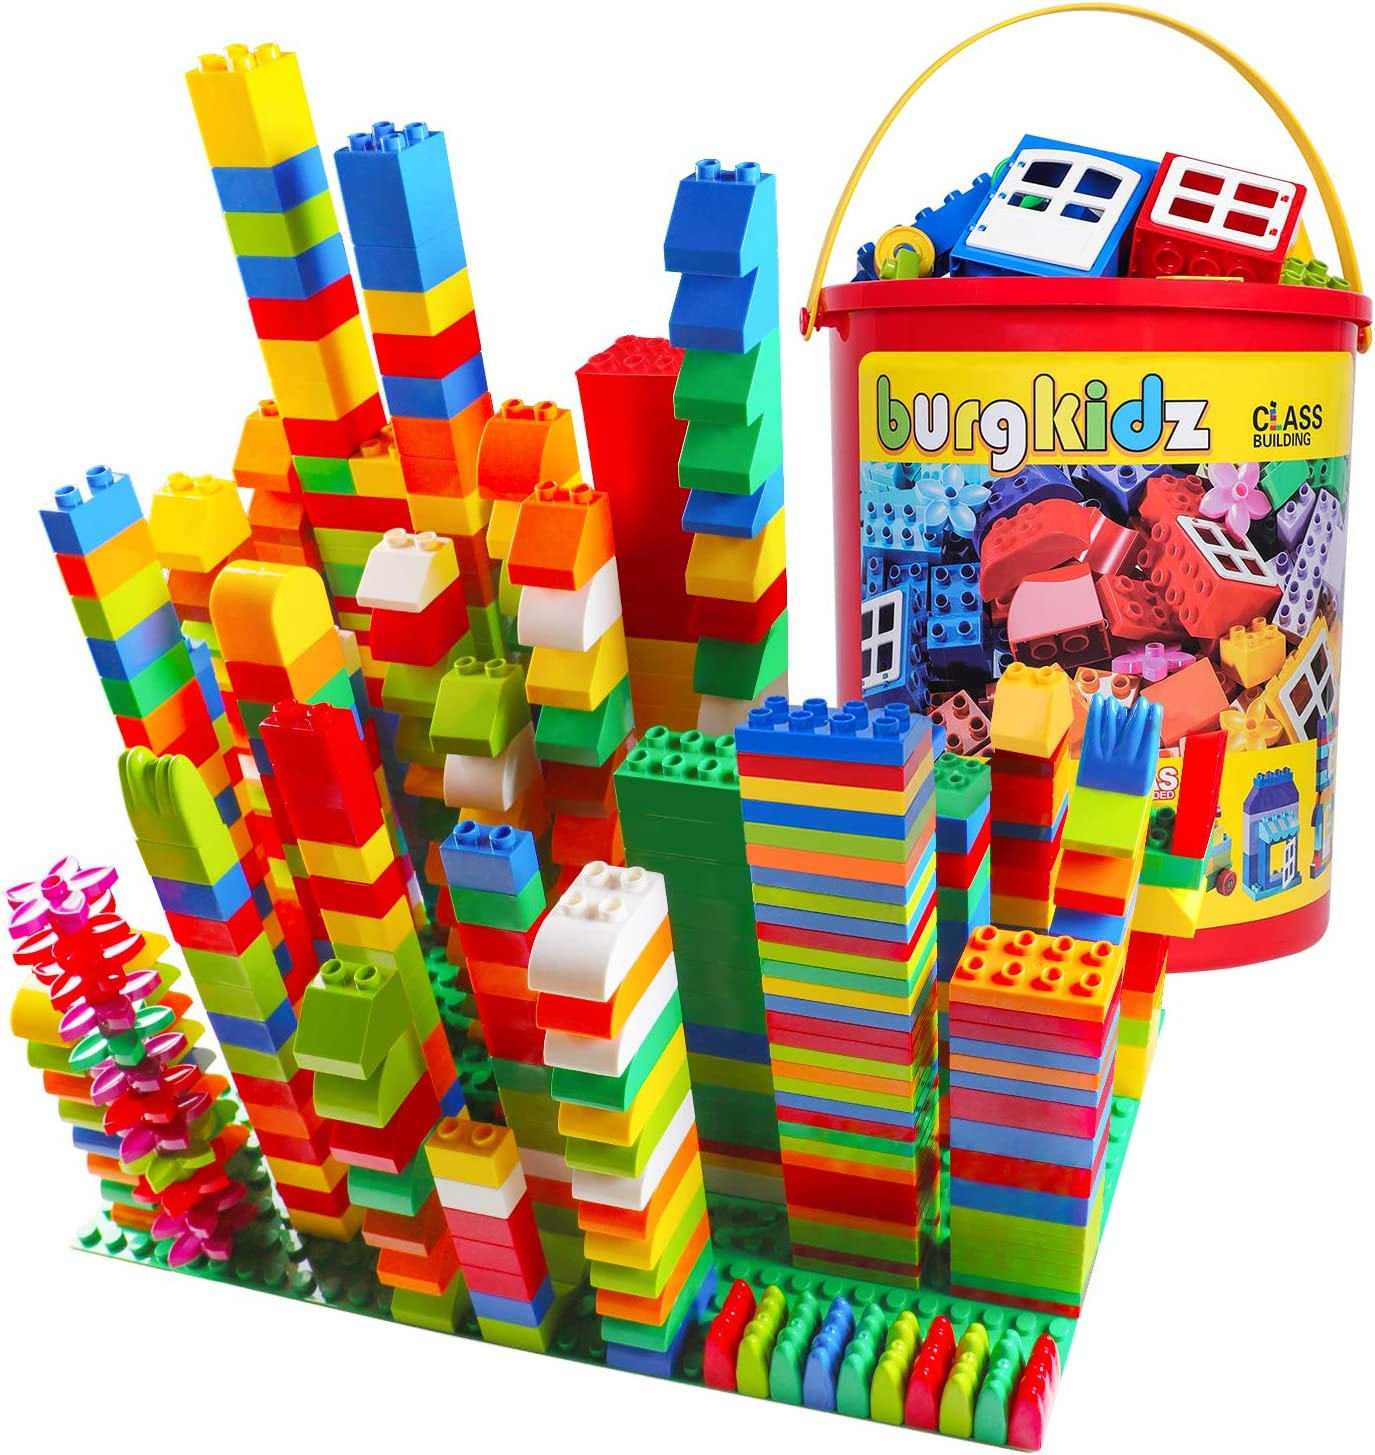 Offer is for 2 sets For age 3 + New. Building Block Set 32 pieces